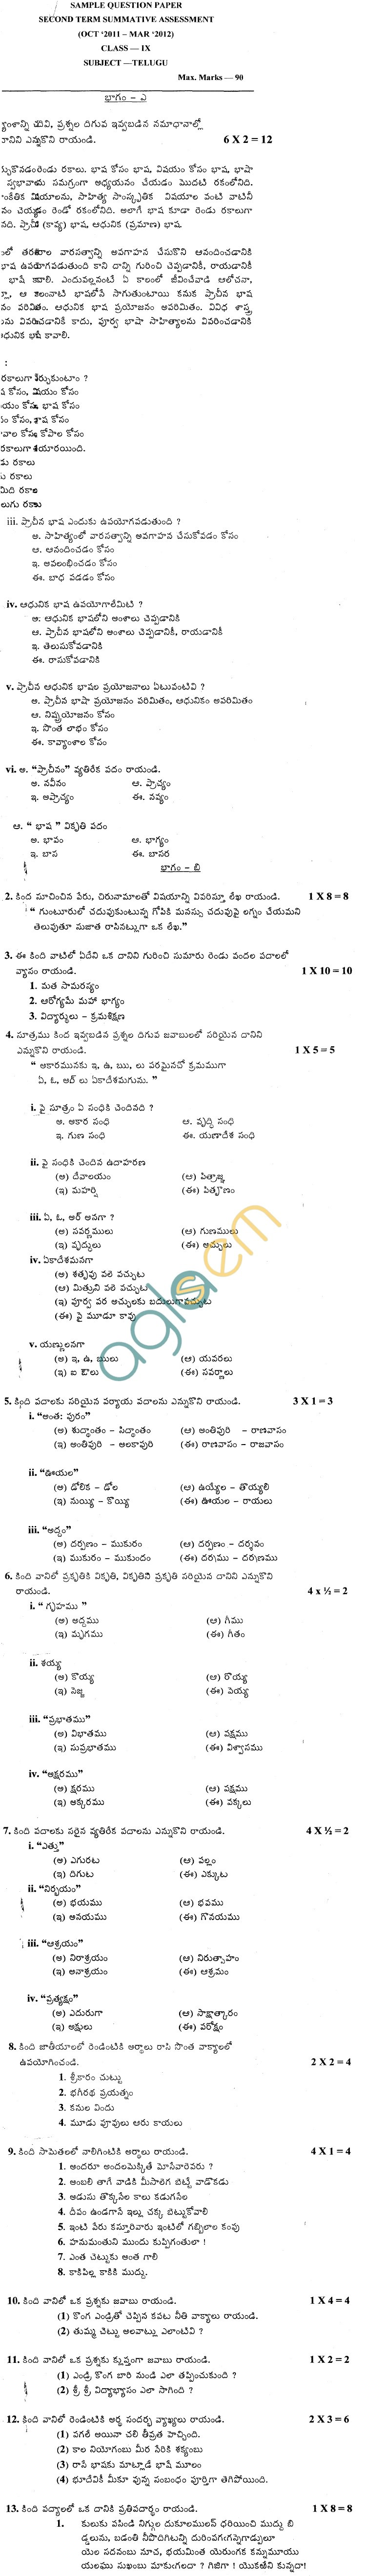 CBSE Class IX & X Sample Papers 2014 (Second Term) Telugu